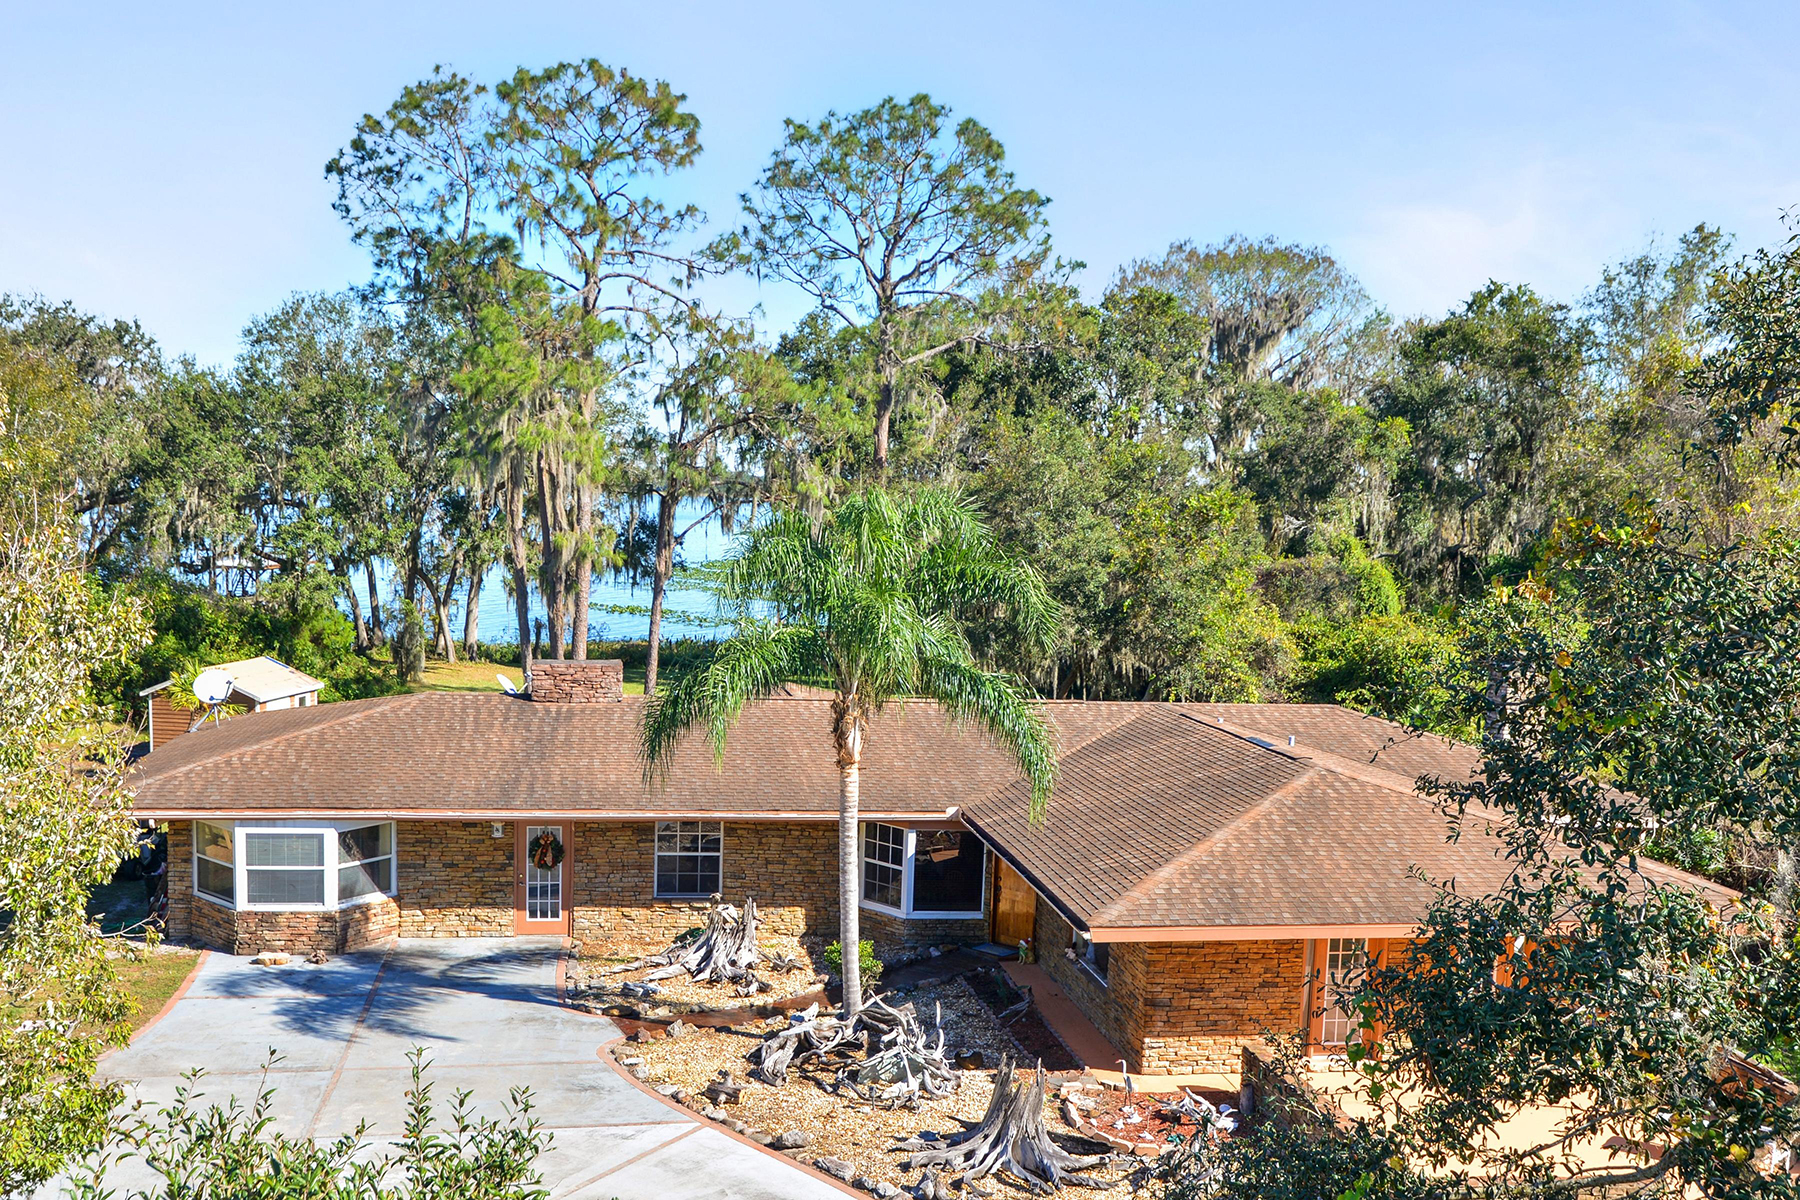 Single Family Home for Sale at HAINES CITY-ORLANDO 10611 Jim Edwards Rd, Haines City, Florida 33844 United States